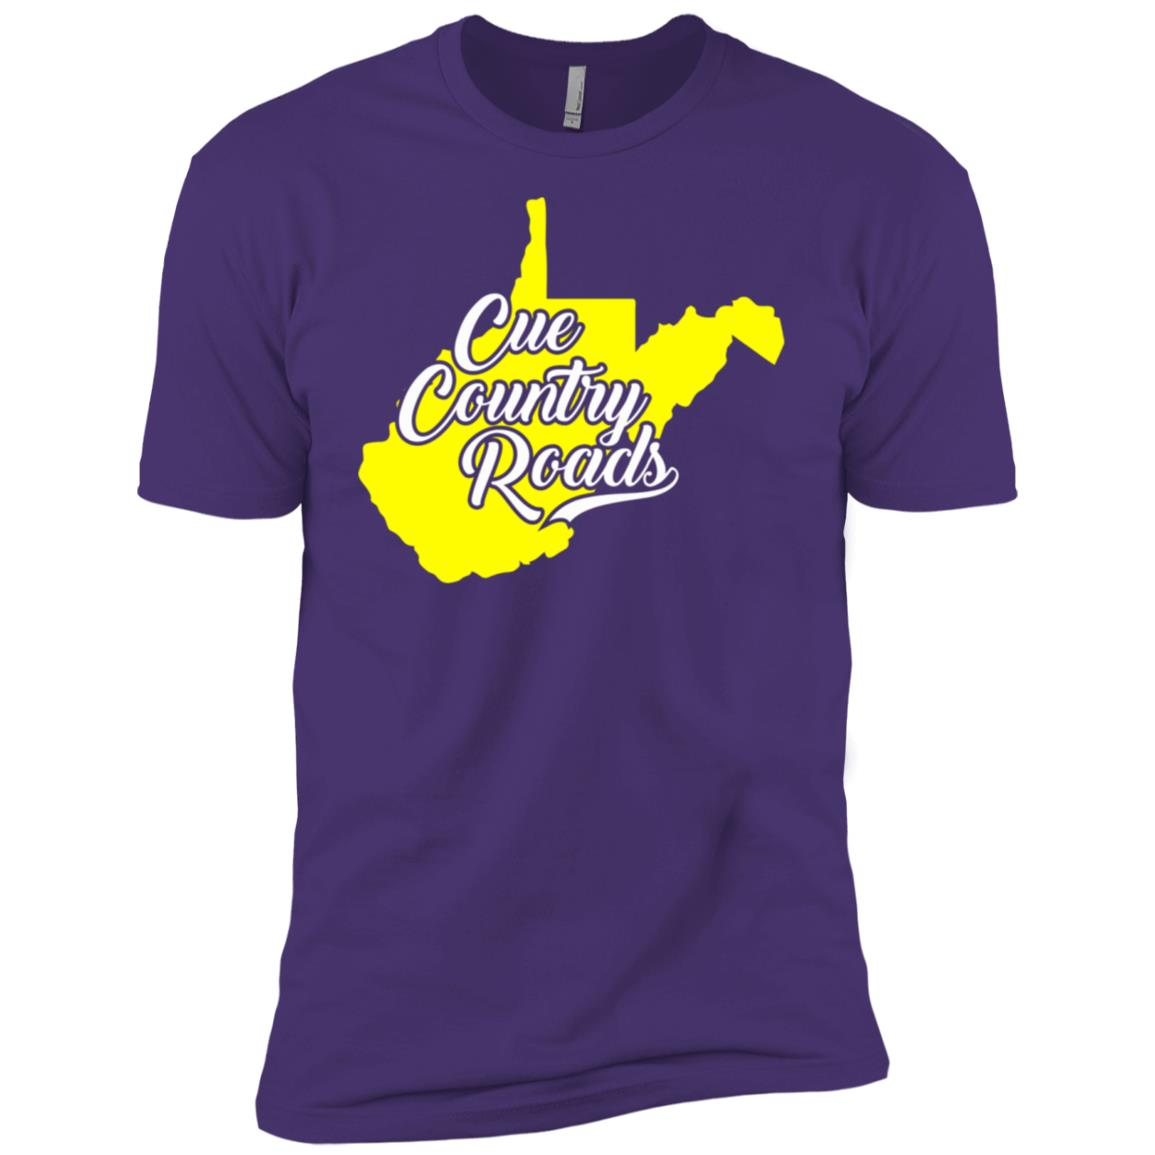 Cue Country Roads Wv Blue and Gold Men Short Sleeve T-Shirt